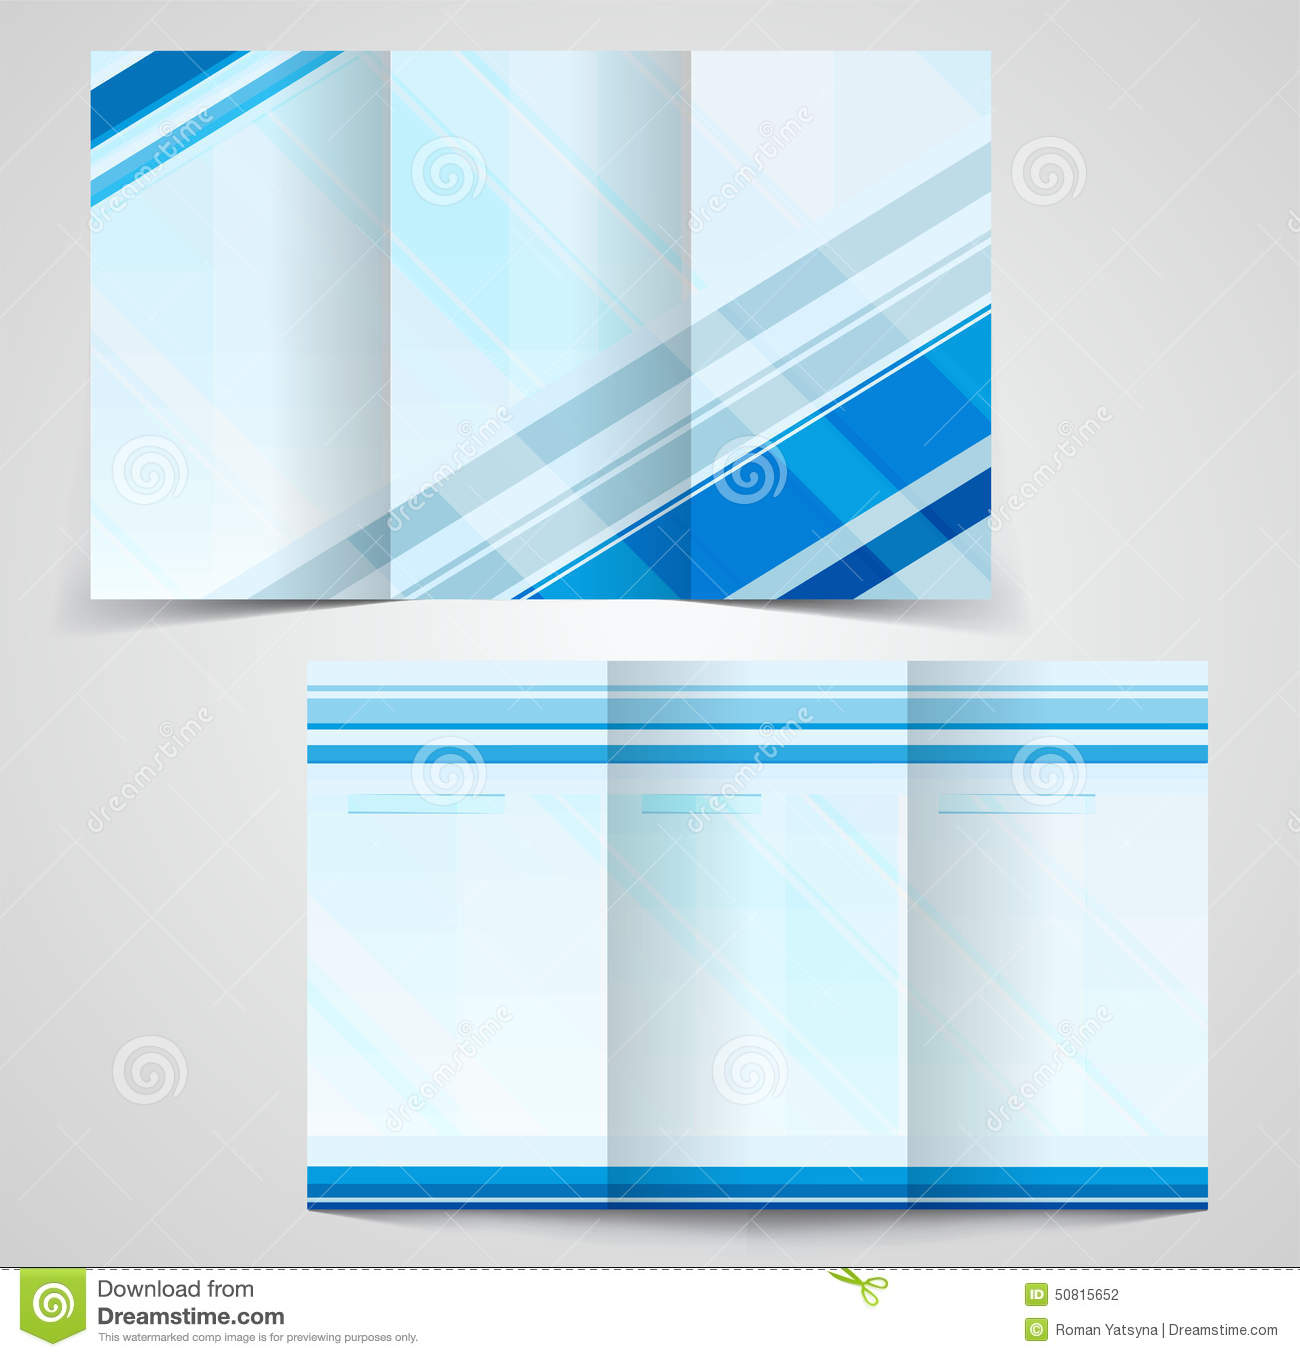 Tri fold business brochure template two sided template for Tri fold brochure template download